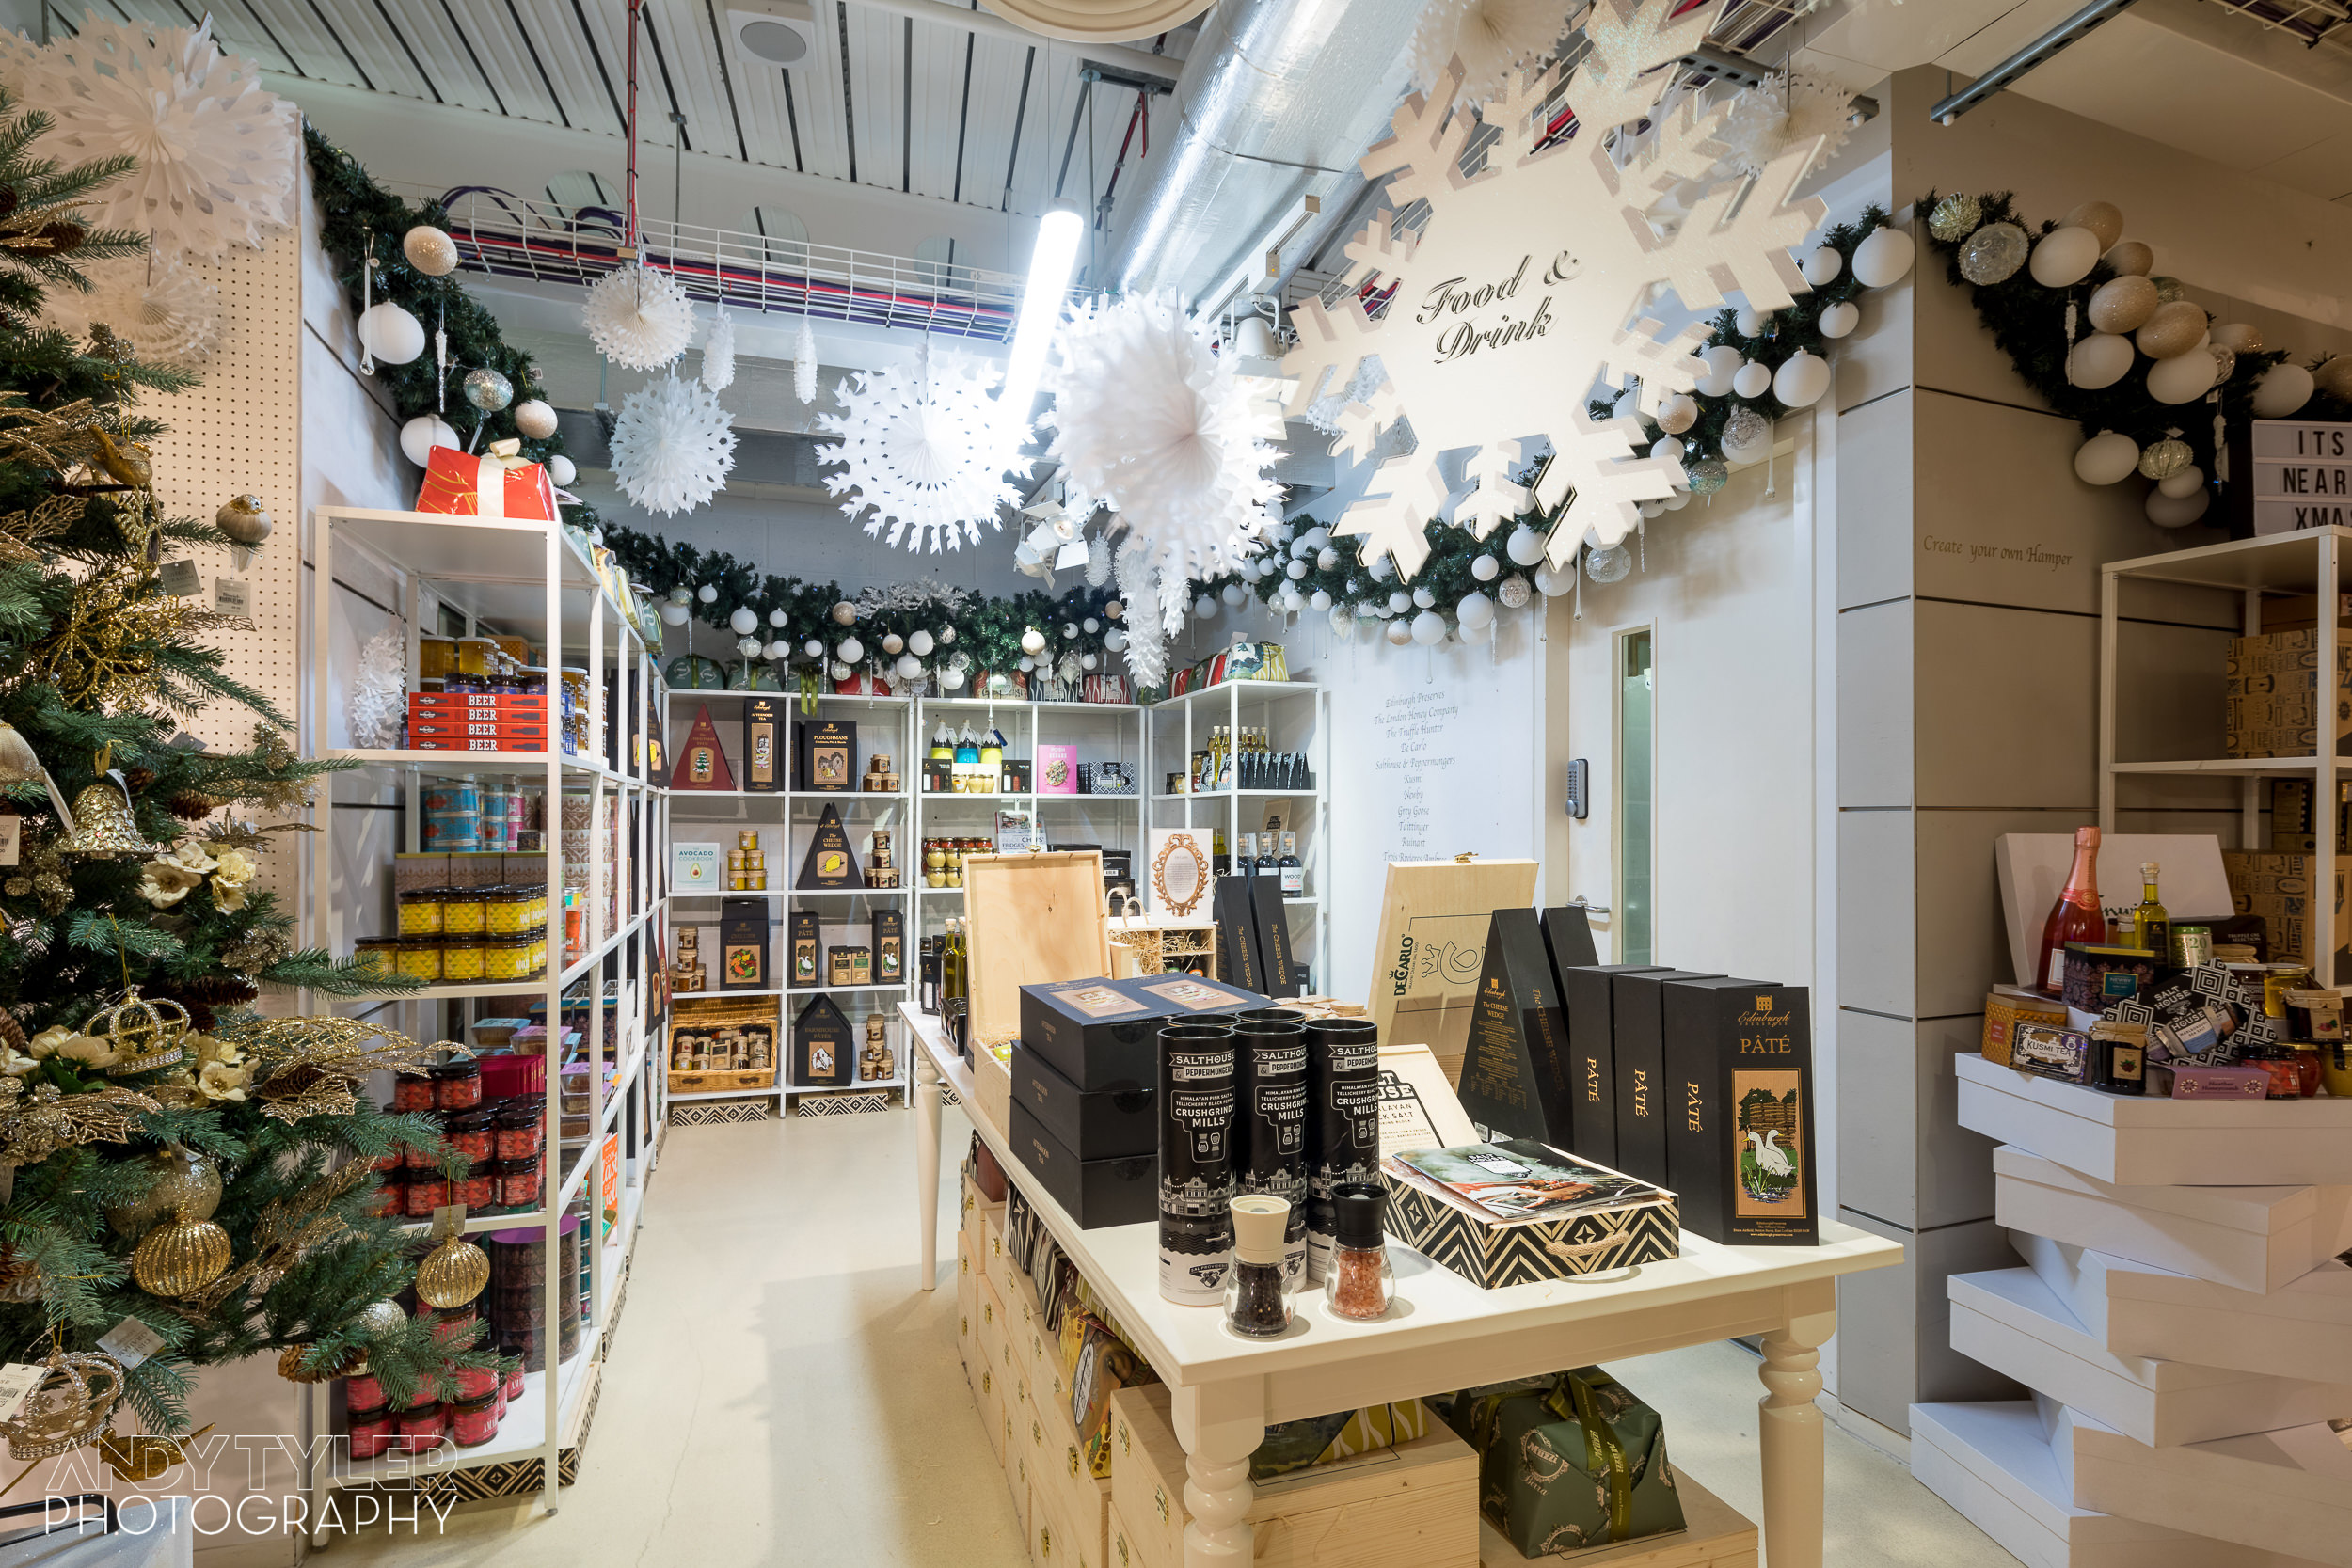 Andy_Tyler_Photography_Luxury_Retail_Interior_005_Andy_Tyler_Photography_044-5DB_7631.jpg